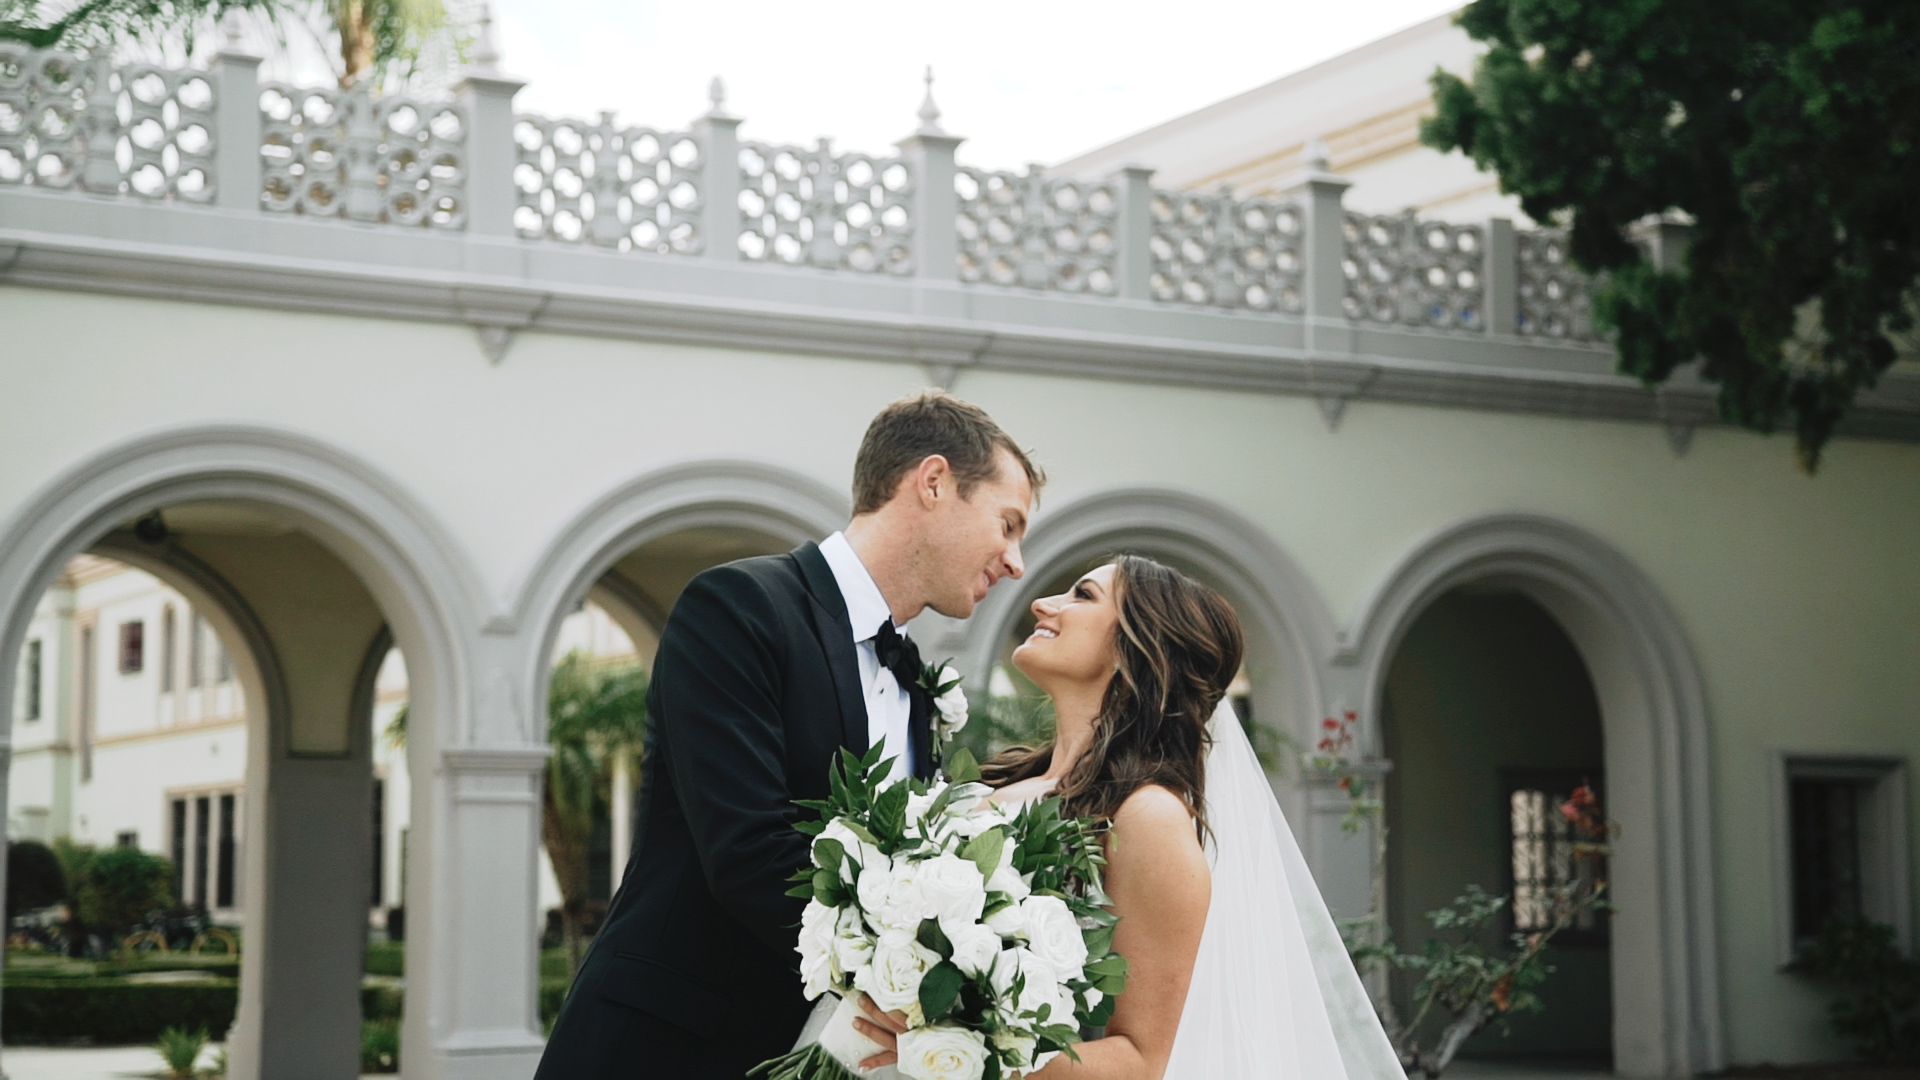 Jason + Alexa | San Diego, California | the inn at rancho santa fe